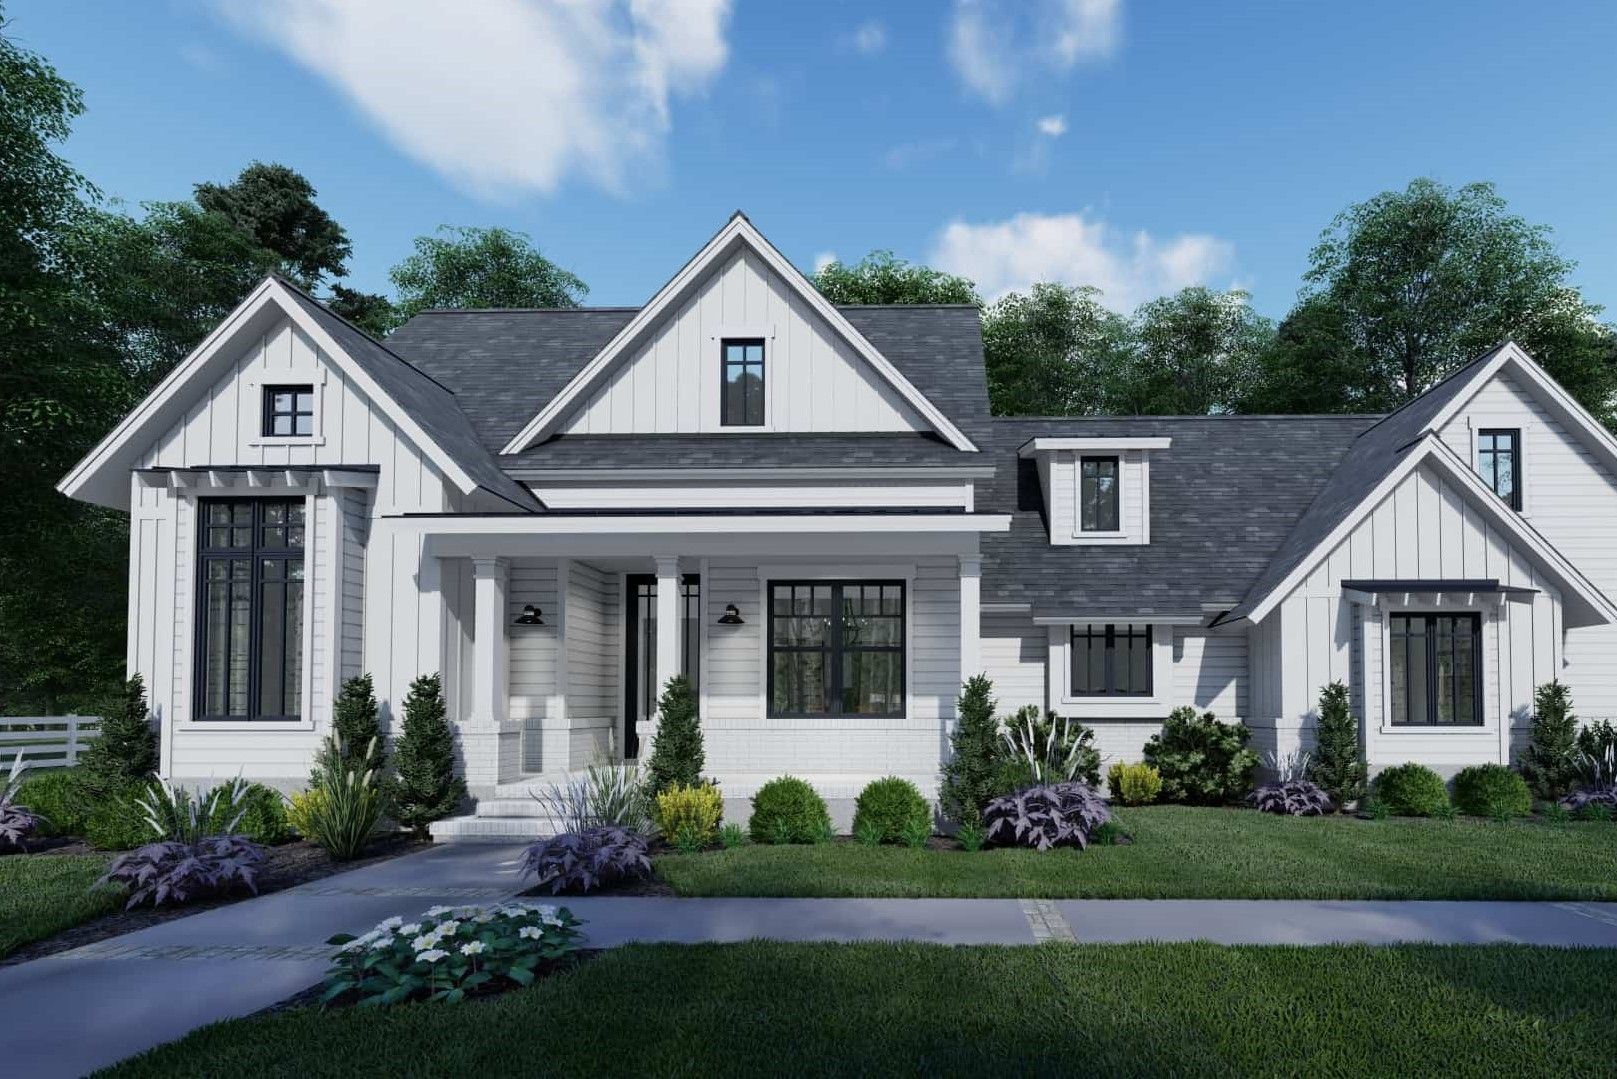 2 Story Farmhouse Plans DIY 3 Bedroom Country House Farm Home 1620 sq//ft NEW